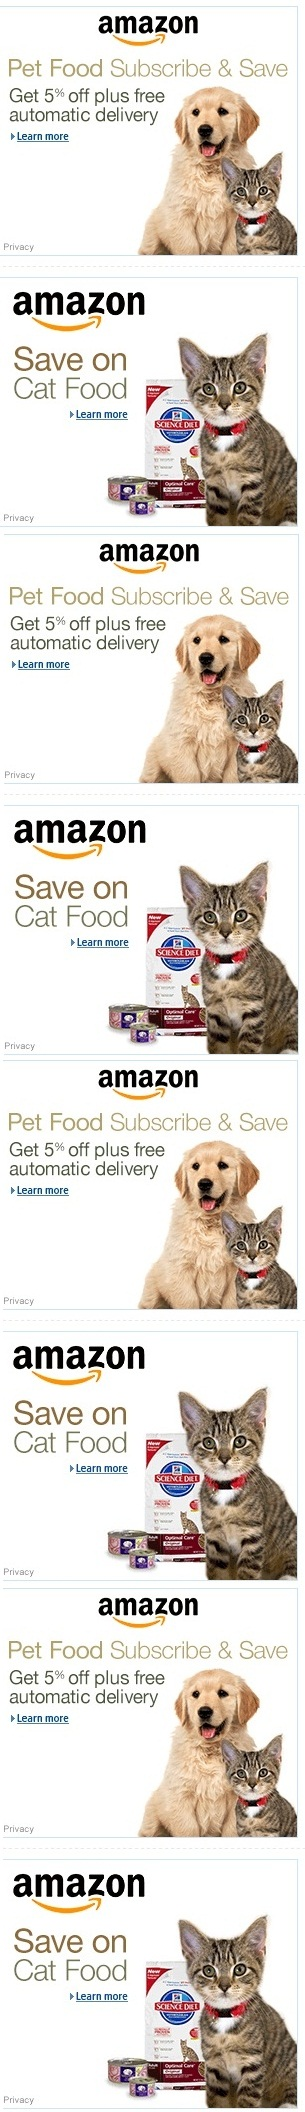 Pet Dog Cat Amazon Promo Shop Amazon Pet Supplies Subscribe Save For Dogs Get 5 Off Receive Free Automatic Free Amazon Products Food Animals Pets